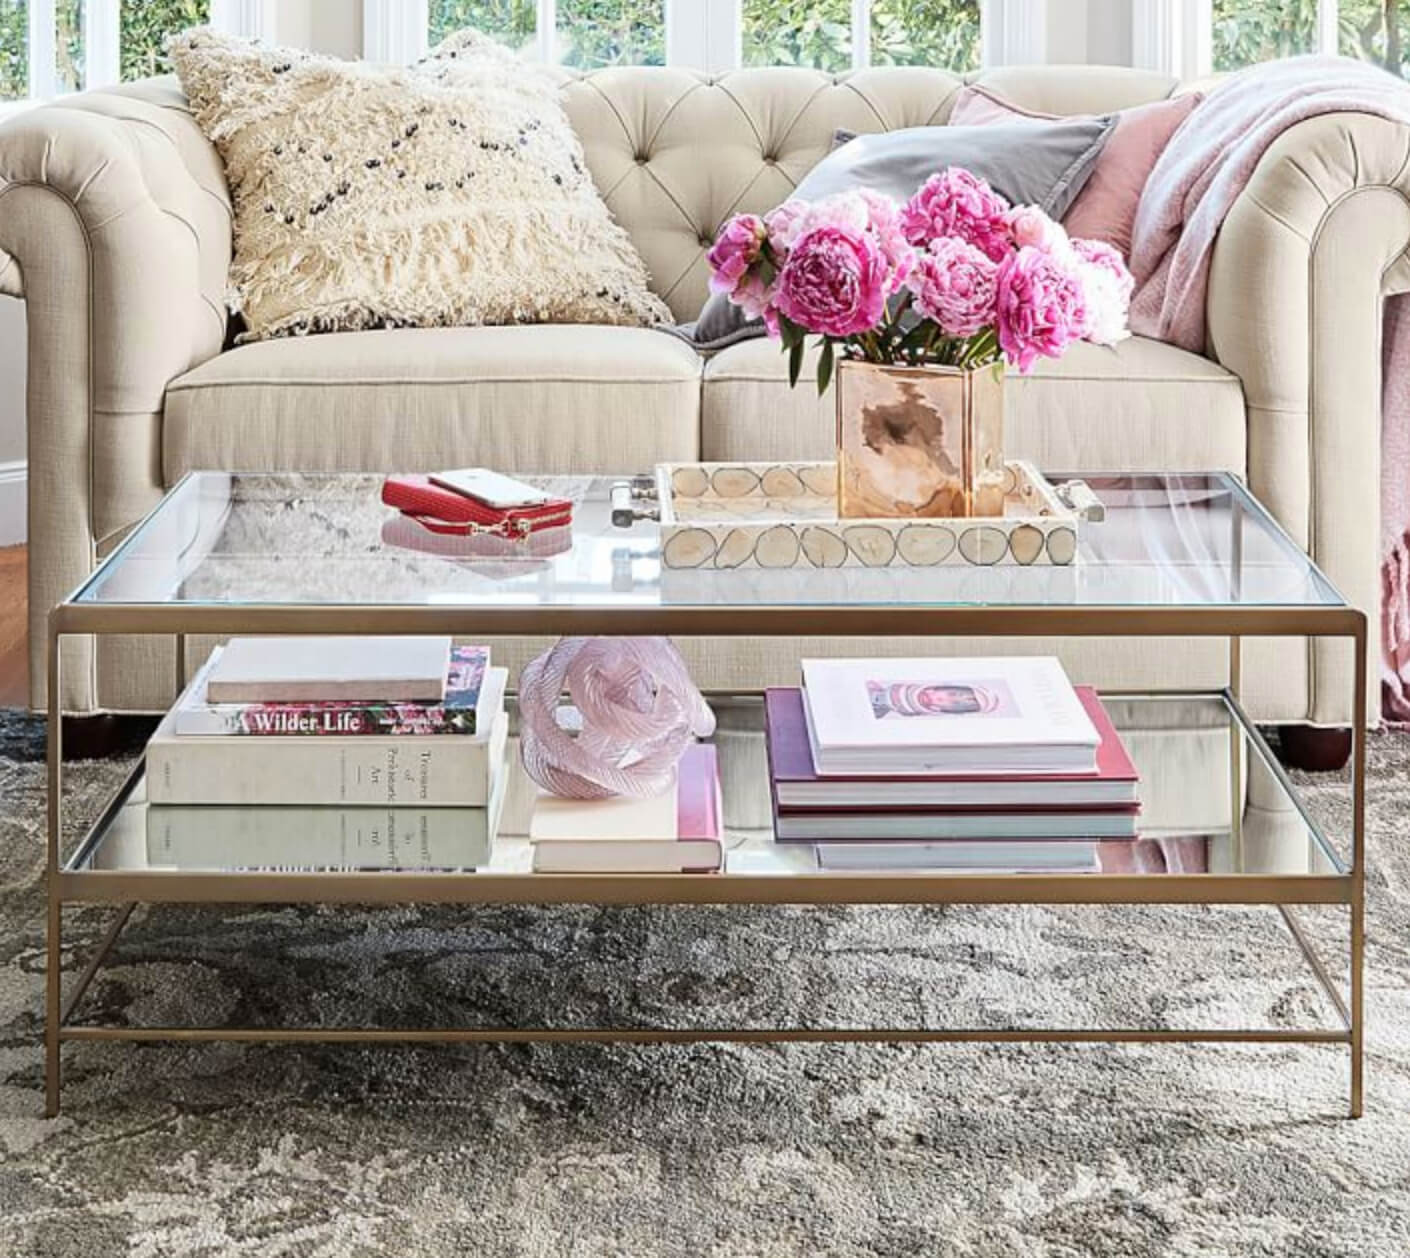 Interior Designer Inspiration for Styling Your Coffee Table ...